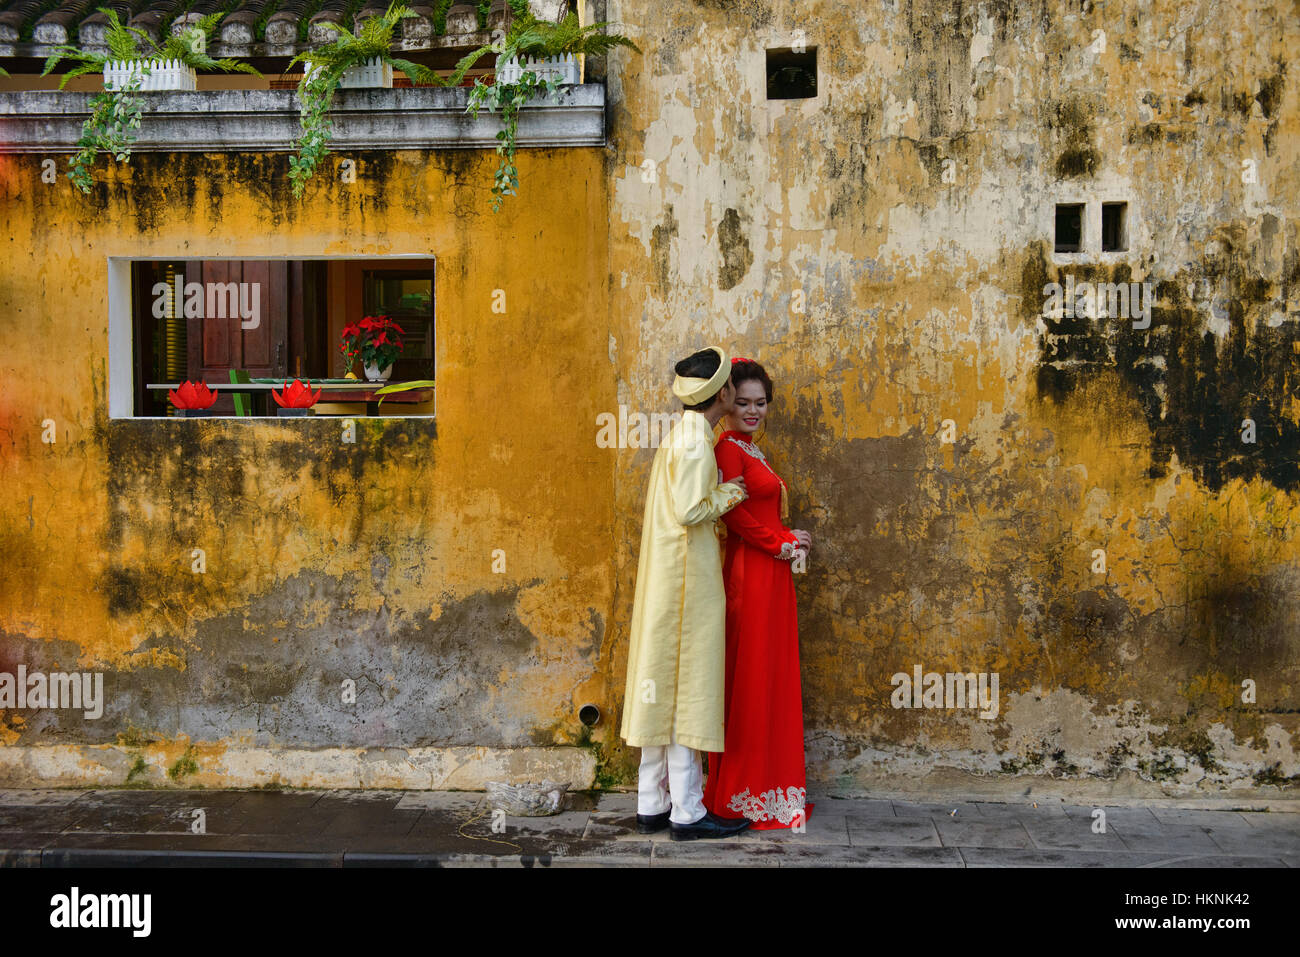 Marital bliss in old town Hoi An, Vietnam - Stock Image